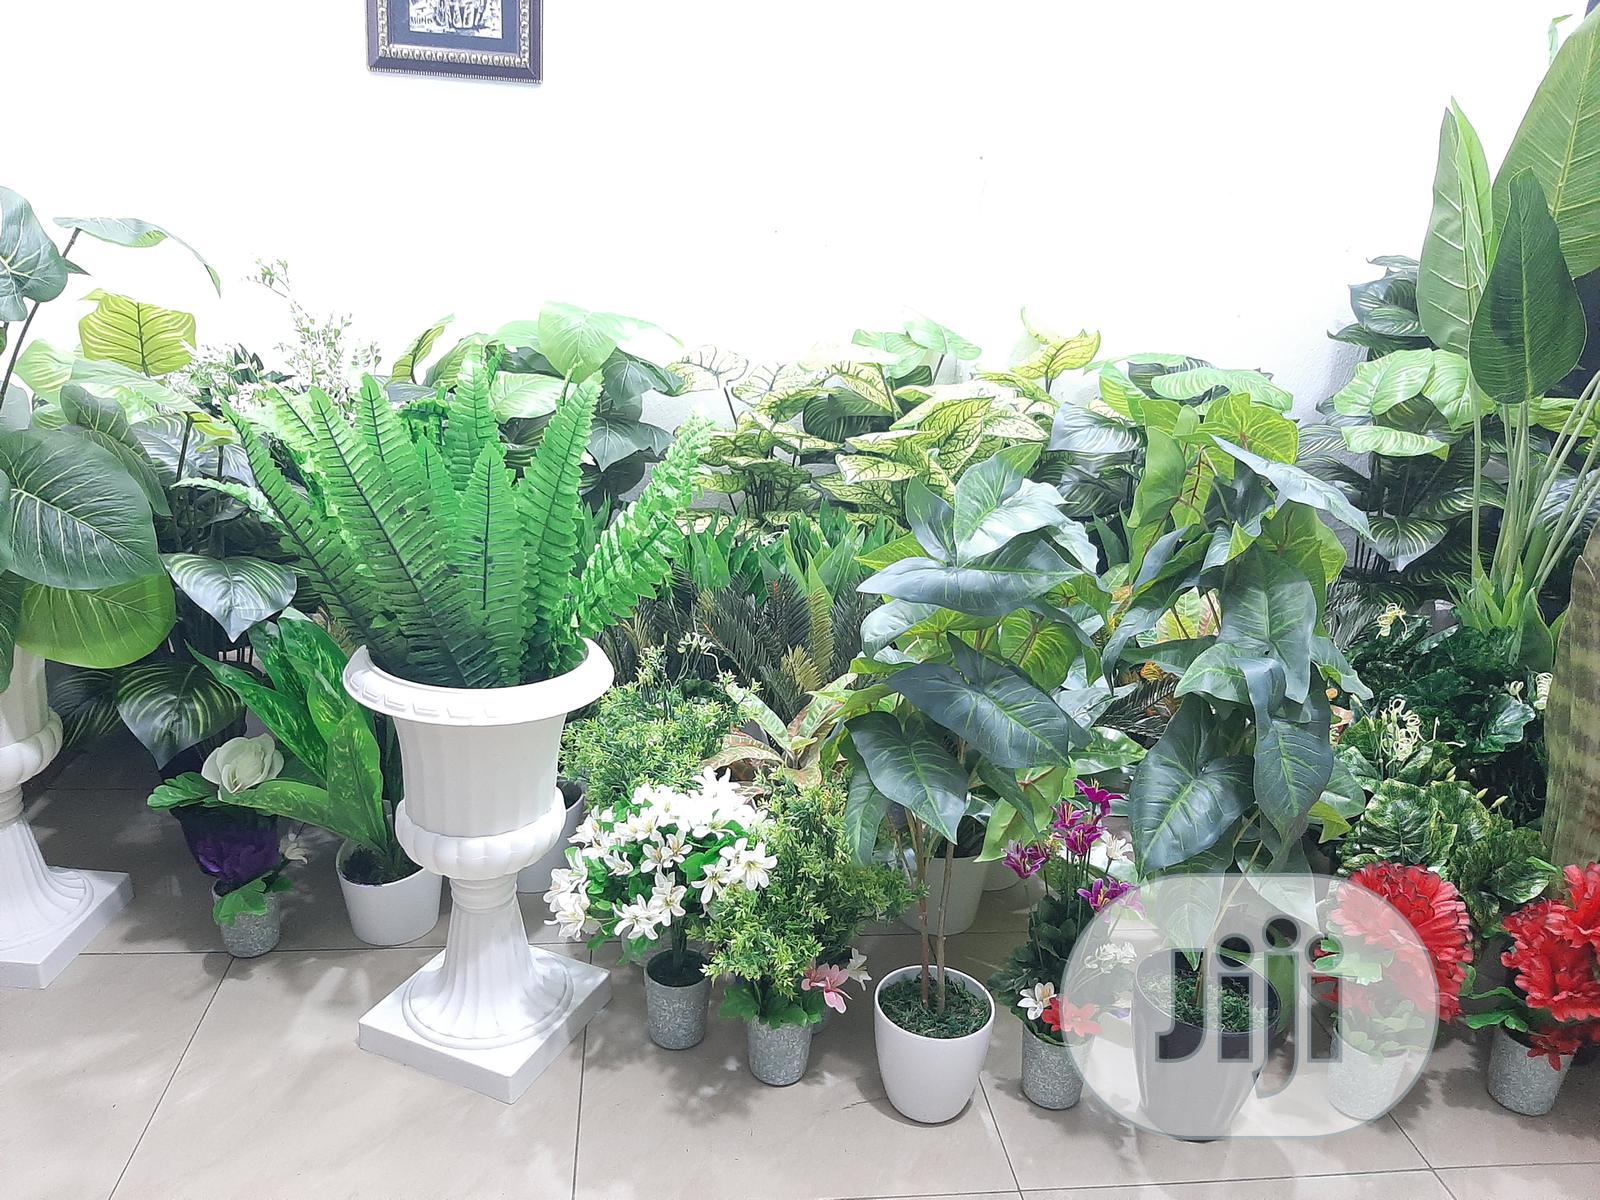 Artificial Flower Plants For Outdoors [Garland Fake Plants]